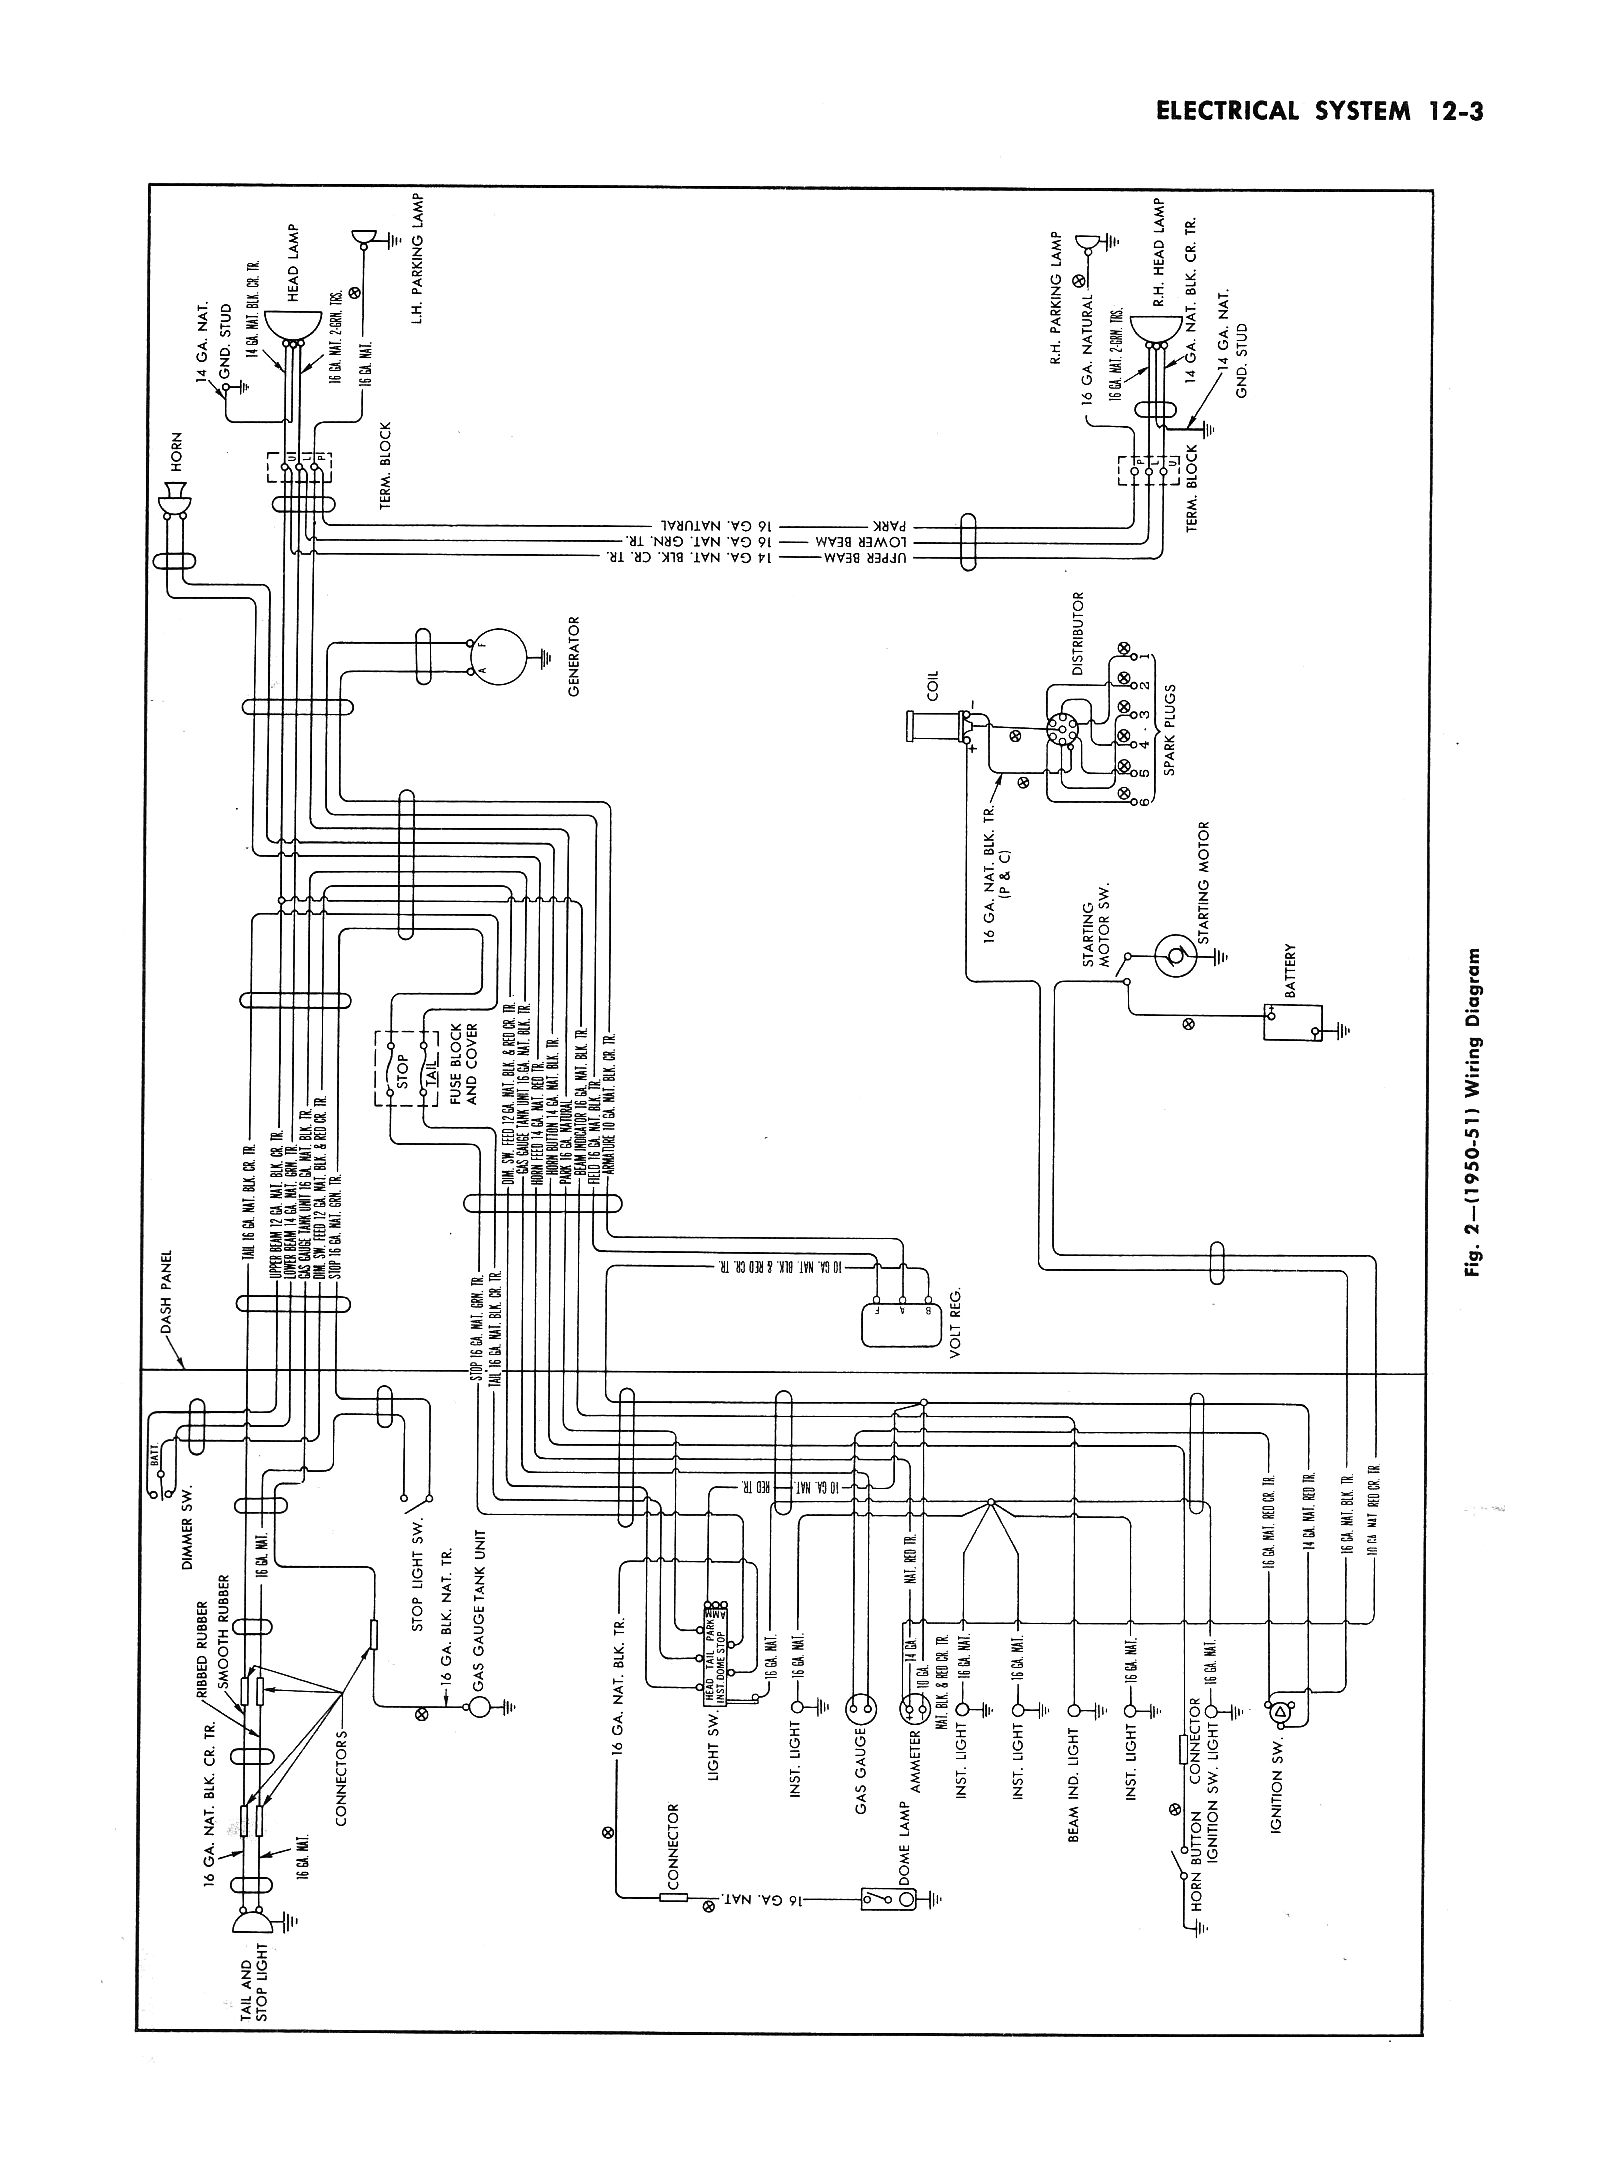 WRG-6242] 1948 Chevrolet Truck Wiring Diagram on